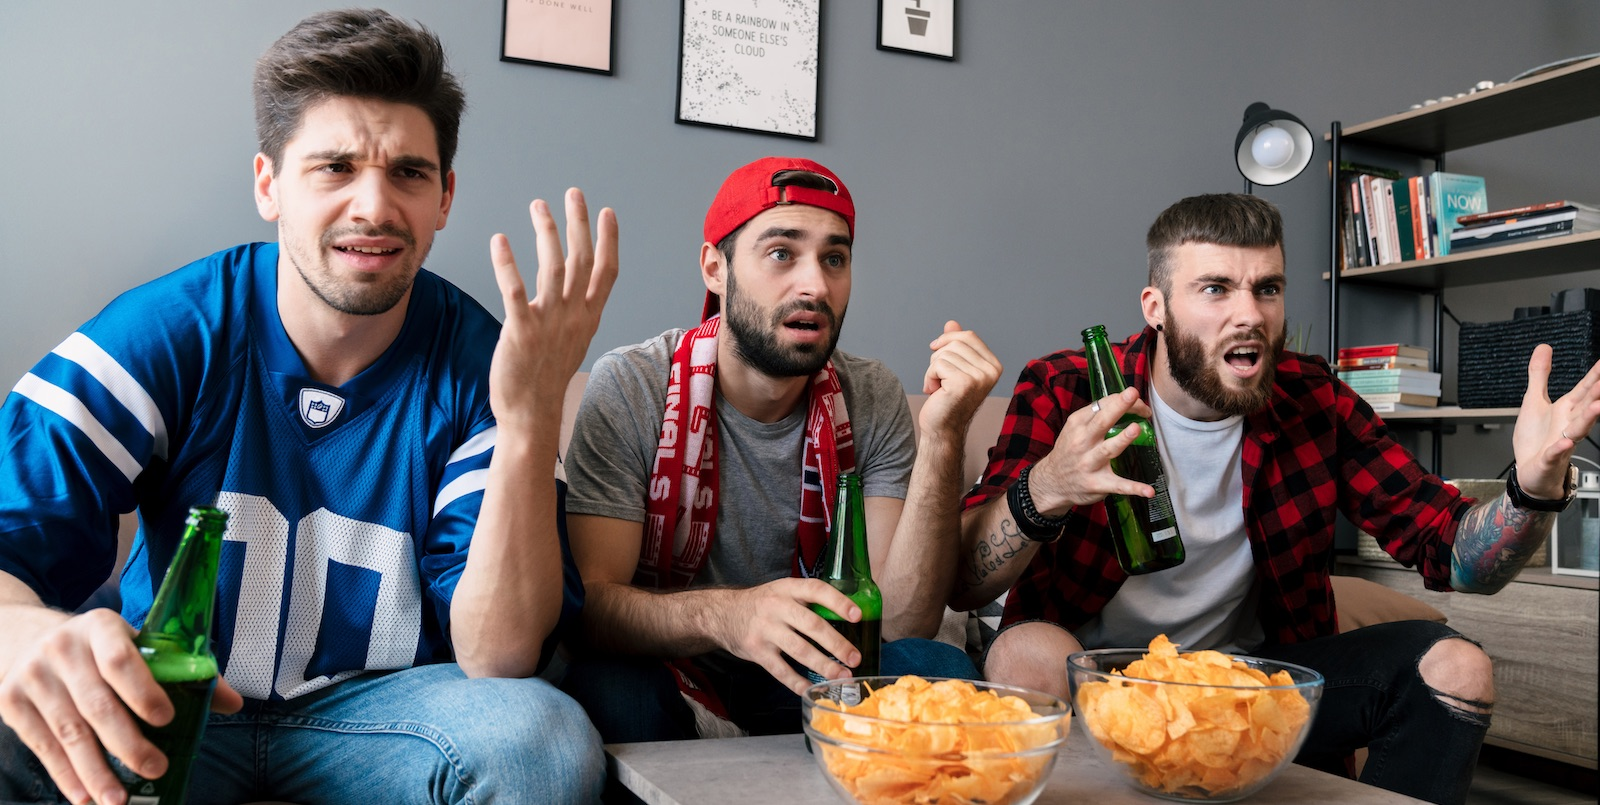 A photo of guys watching a game